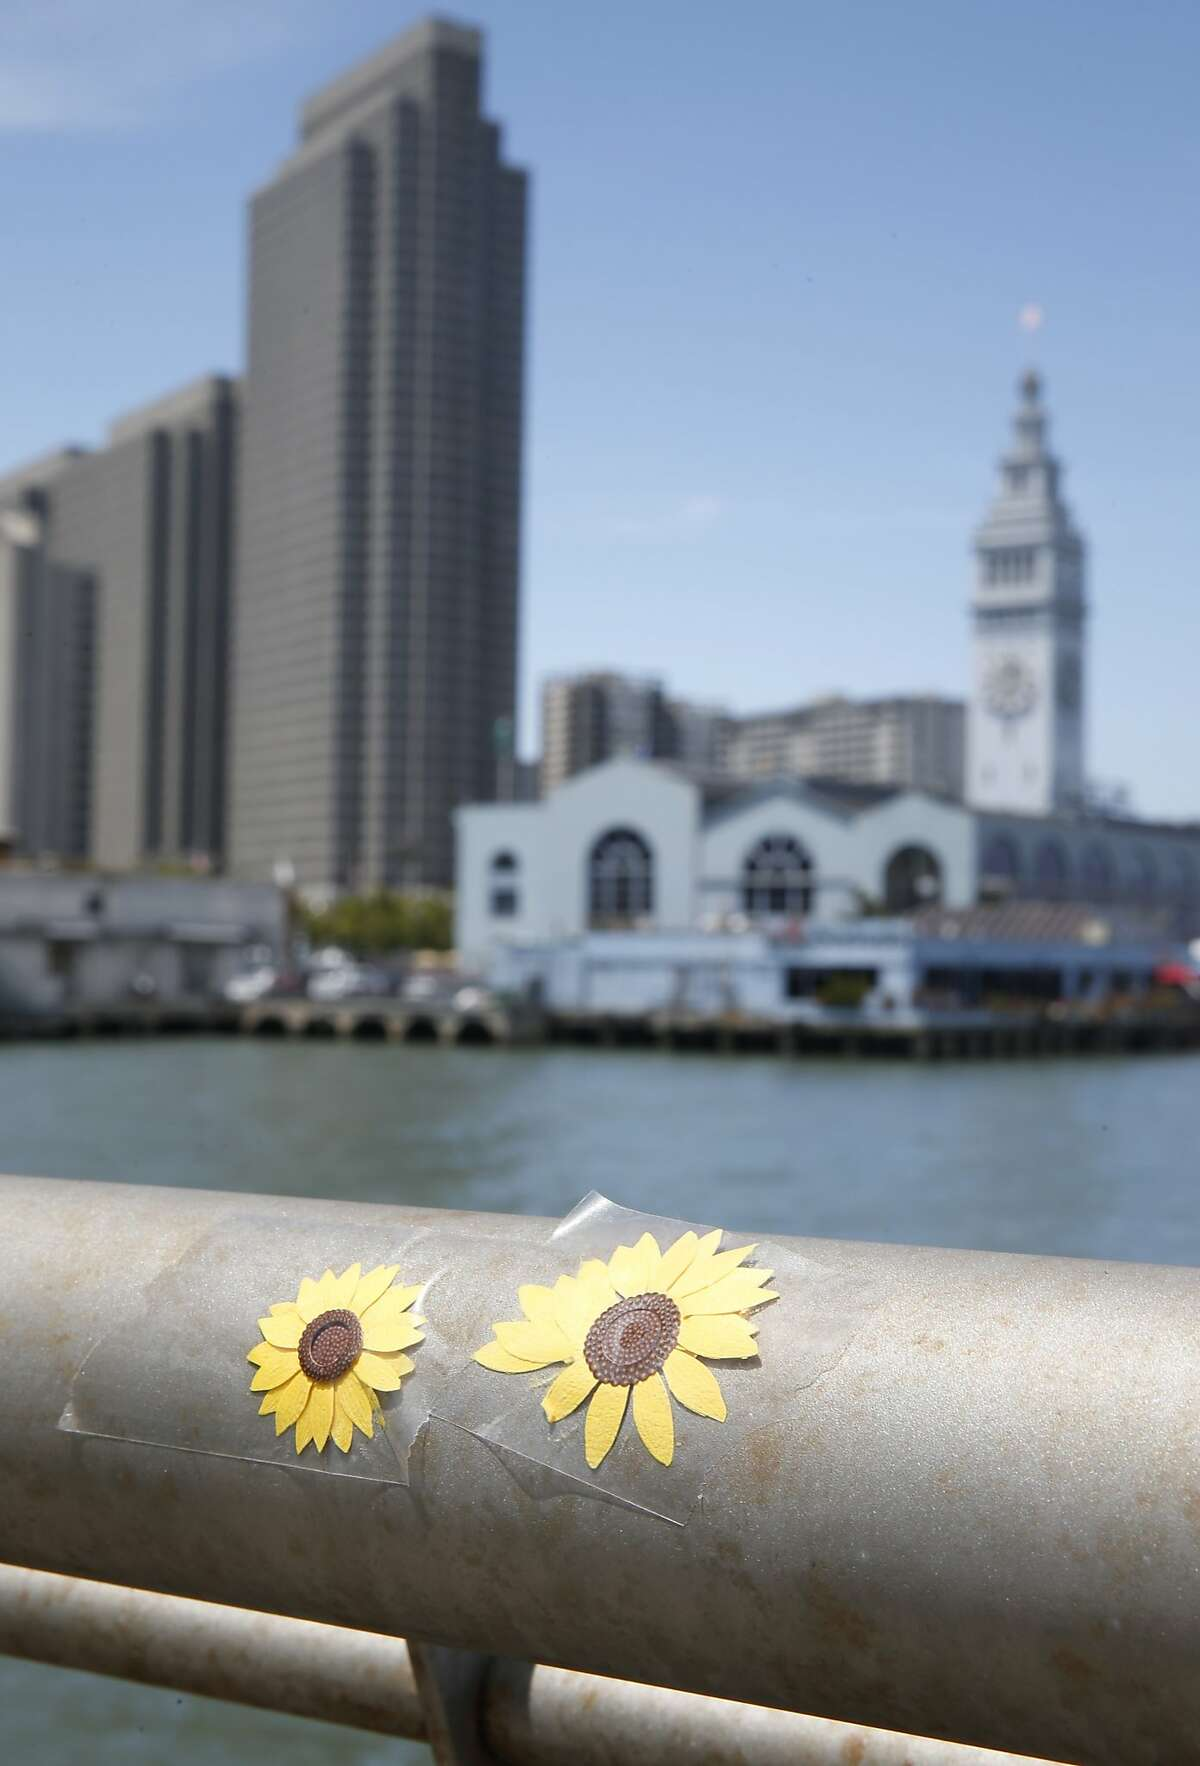 Flowers are taped to the railing at a memorial site for Kathryn Steinle on Pier 14 in San Francisco, Calif. on Friday, July 17, 2015. Steinle was gunned down 2 1/2 weeks ago allegedly by Juan Francisco Lopez-Sanchez, a Mexican citizen who authorities contend is in the country illegally.